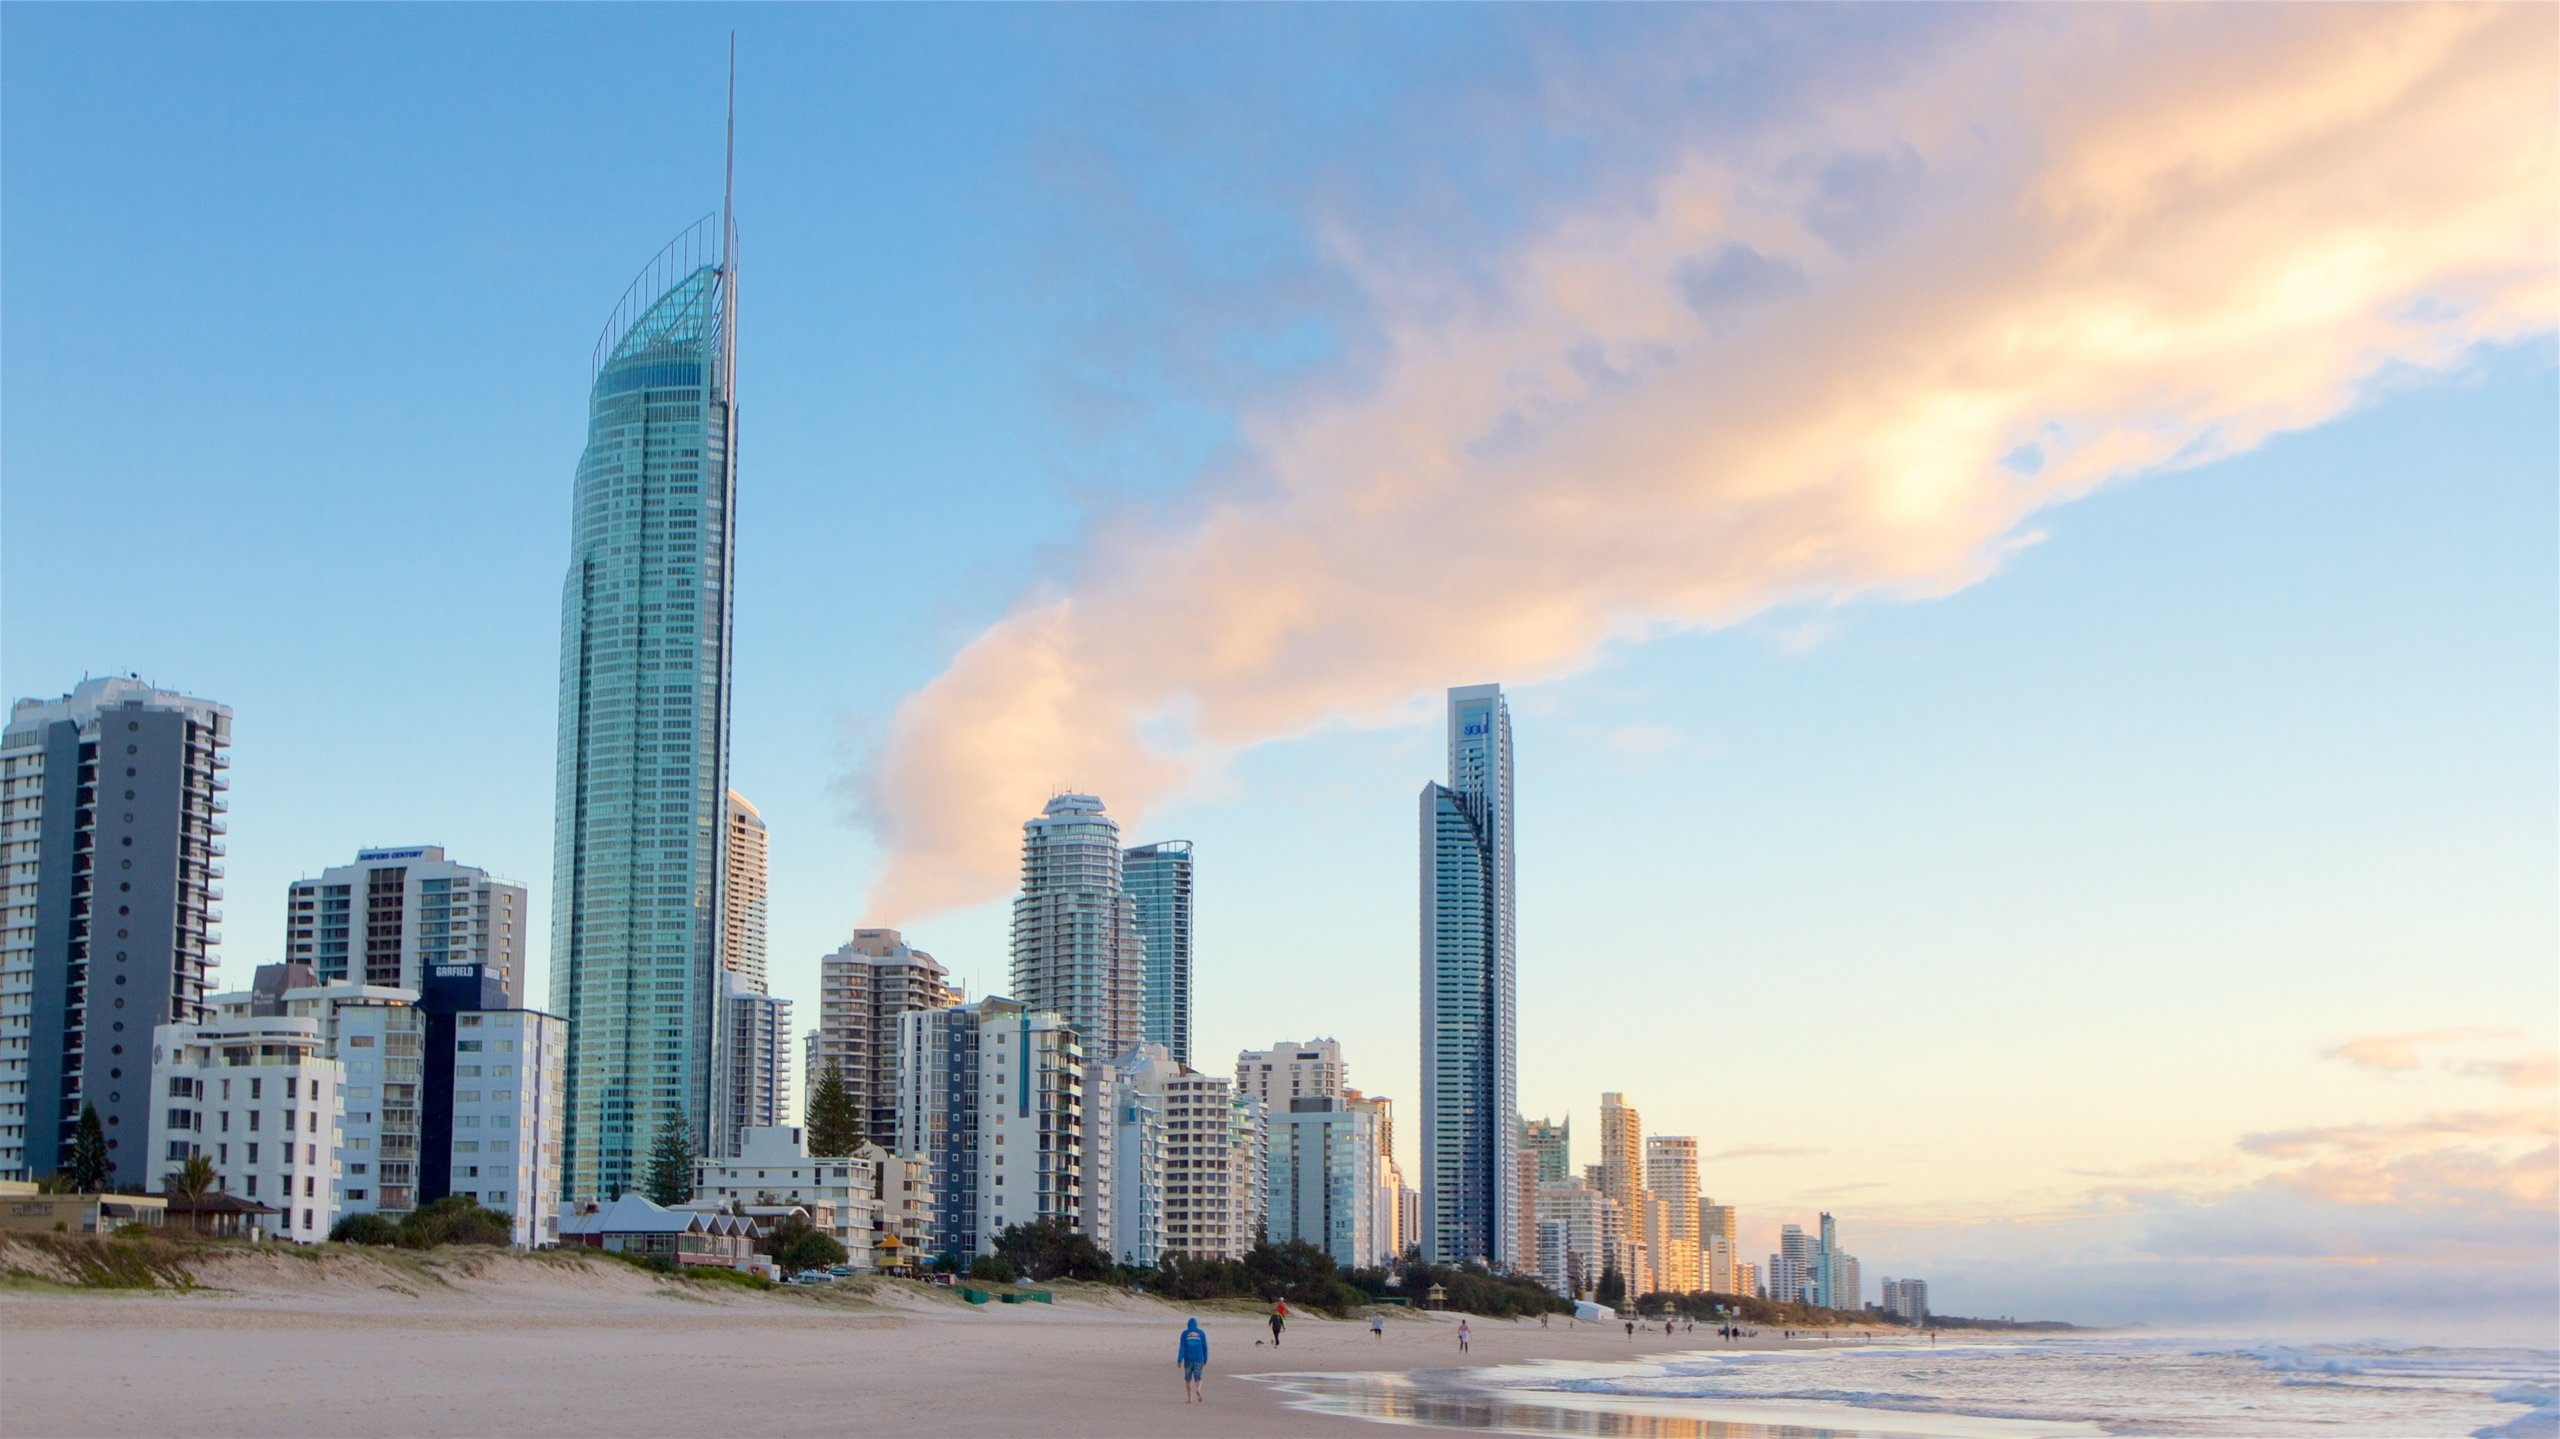 Gold Coast Vacation Rentals from $70: Search Short-Term ...